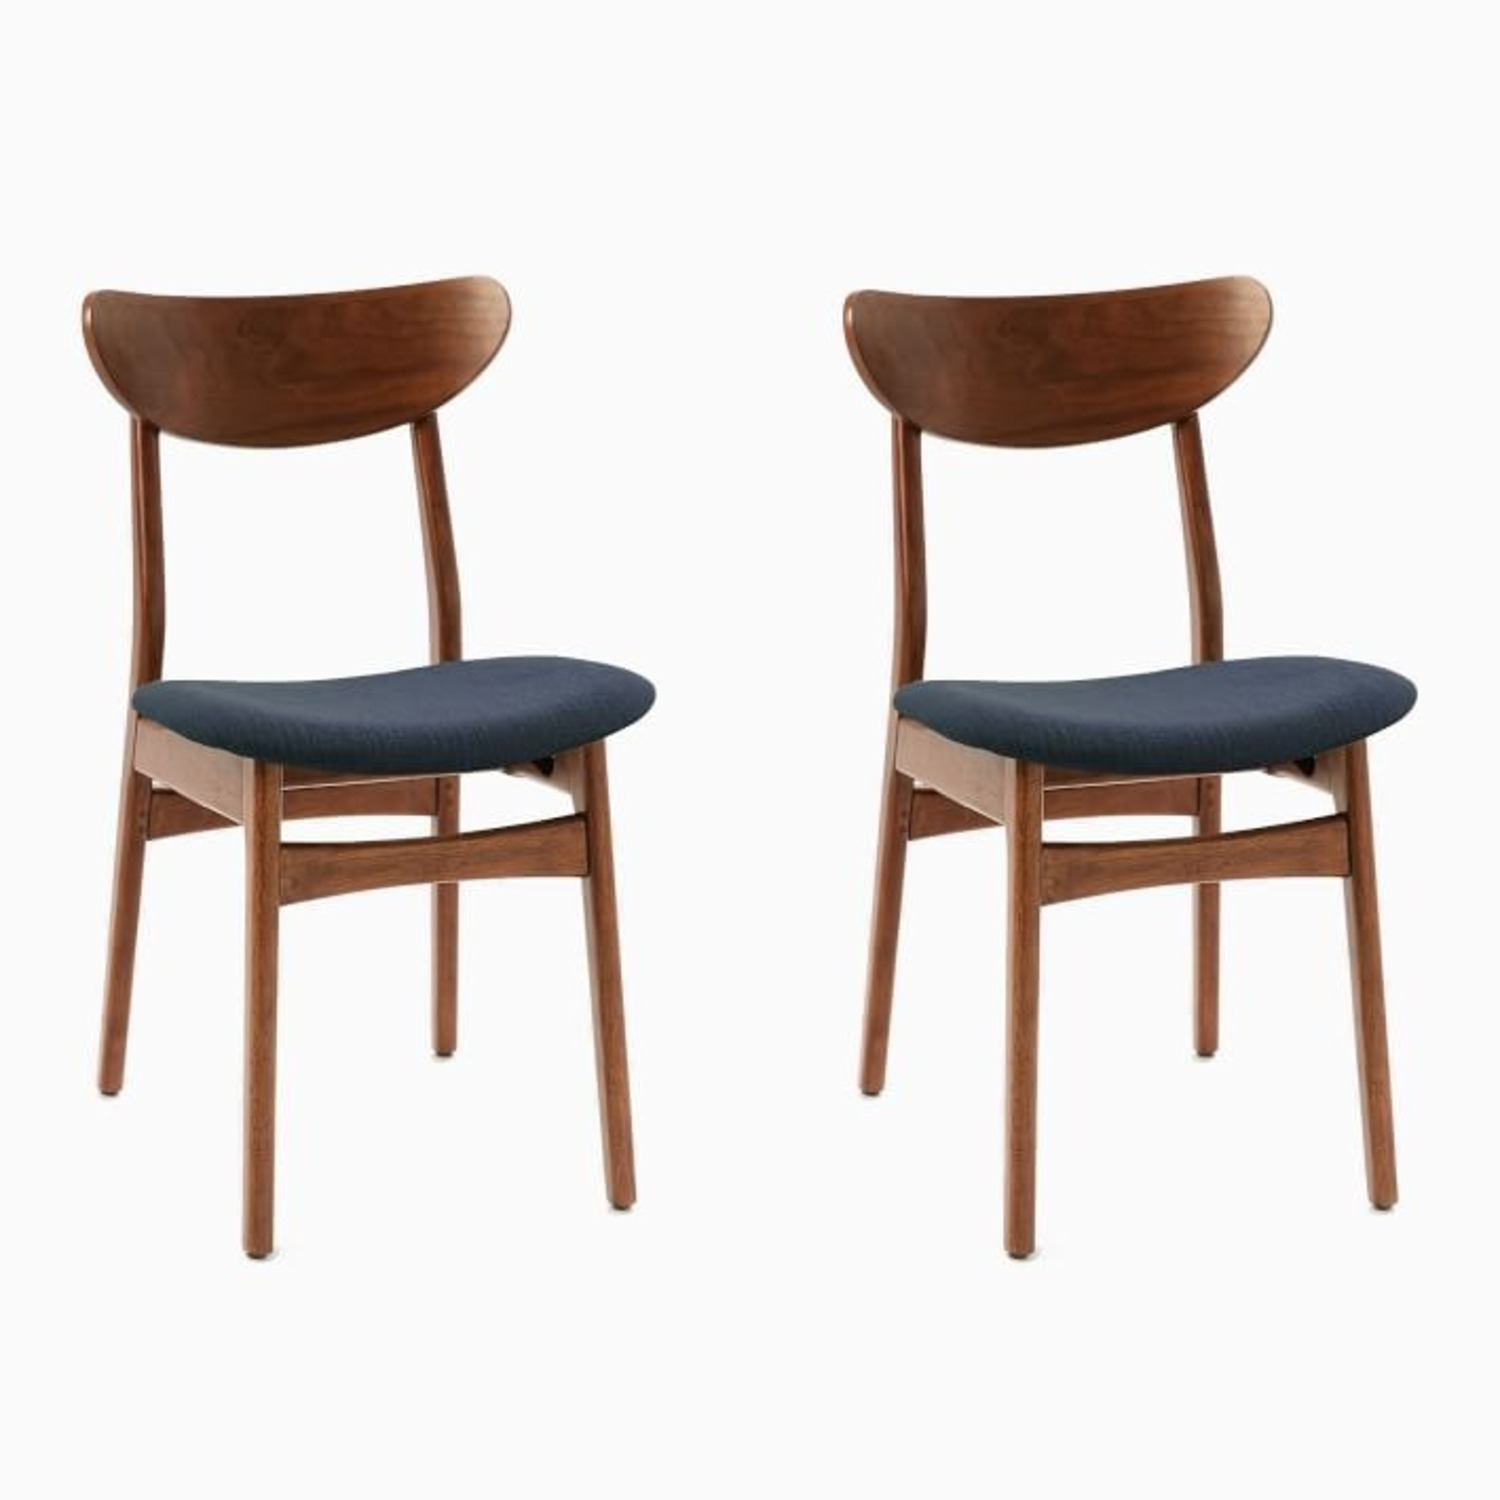 West Elm Classic Cafe Dining Chair (Set of 2) - image-3